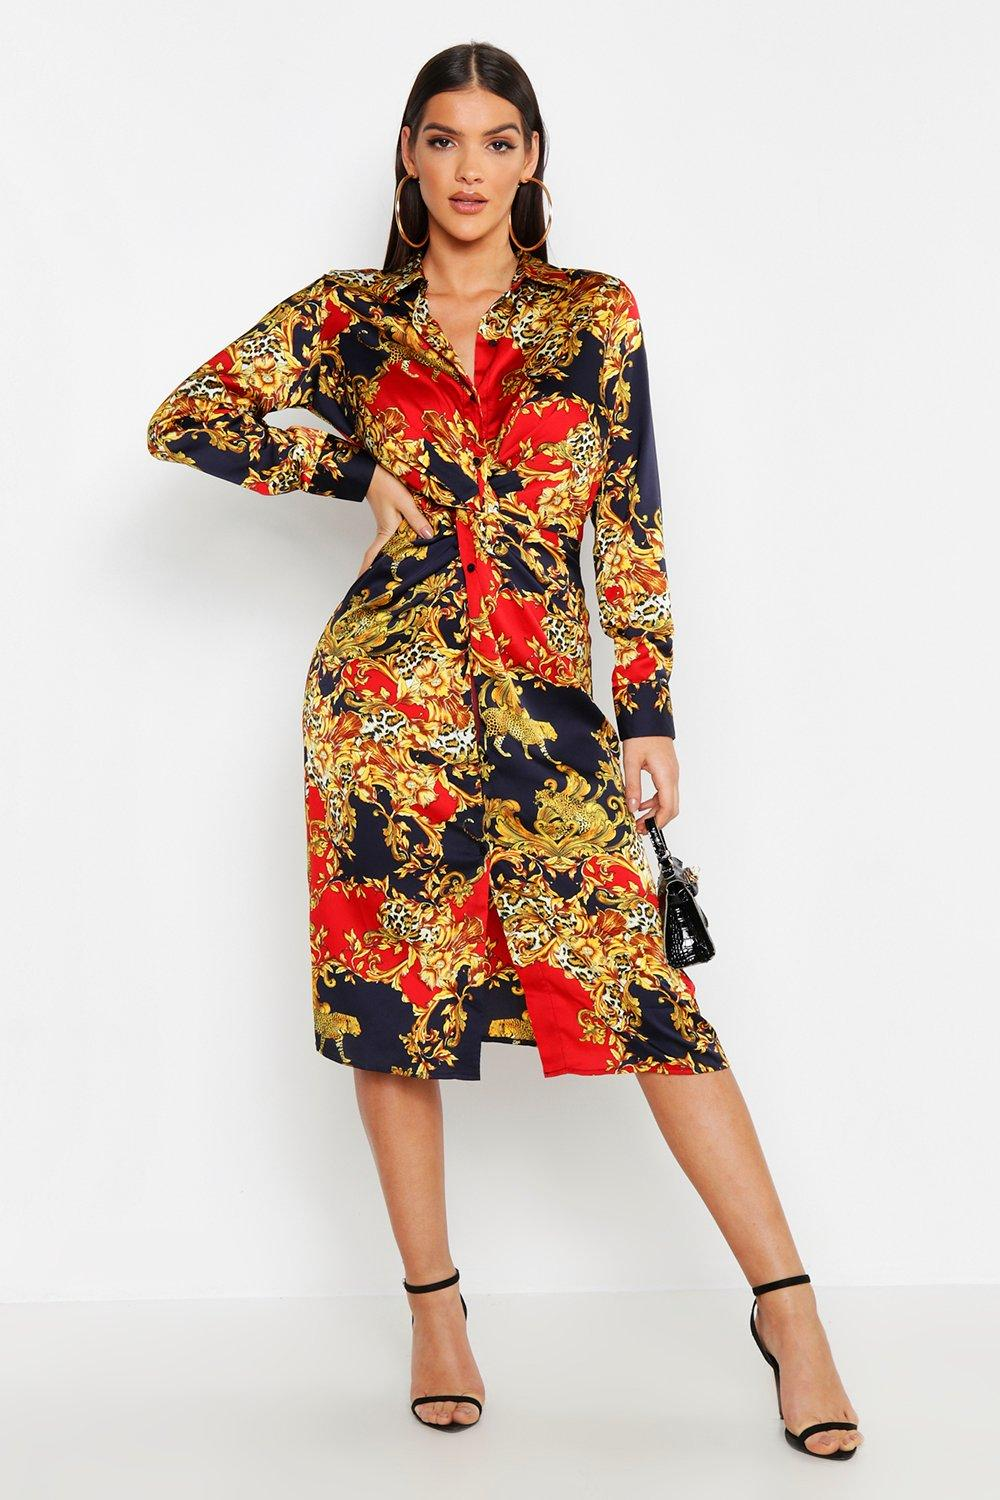 a3819d0f0bfa Satin Knot Front Chain Print Midi Dress. Hover to zoom